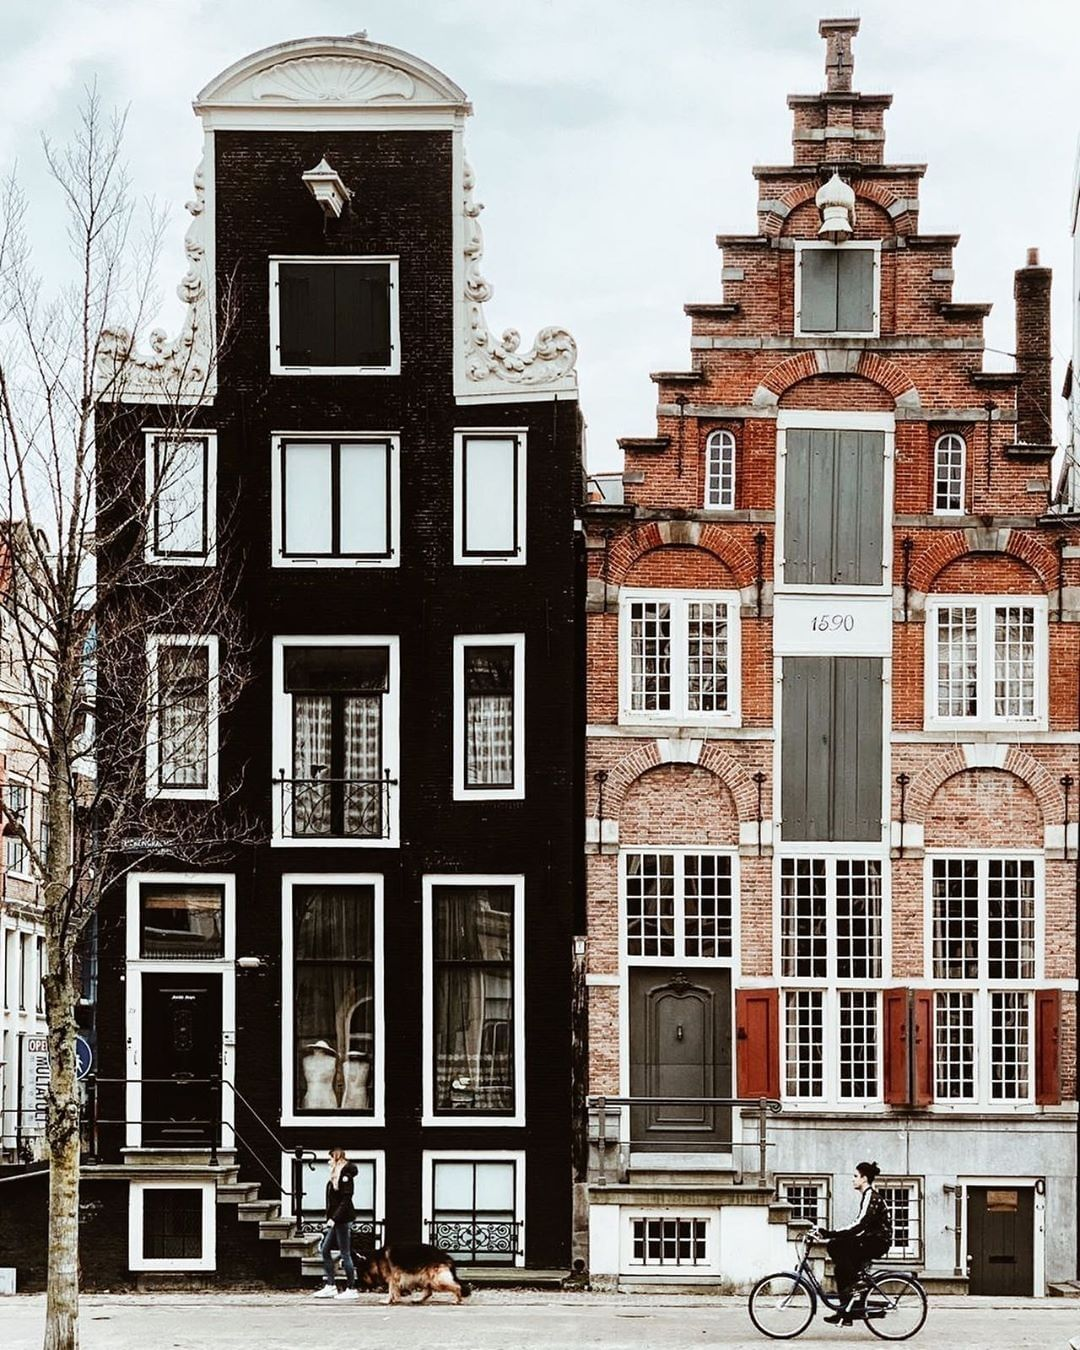 Flash Pack On Instagram From Its Historical Secrets To Modern Spirit Explore This Charming Dutch Capita Amsterdam Houses Beautiful Architecture Architecture